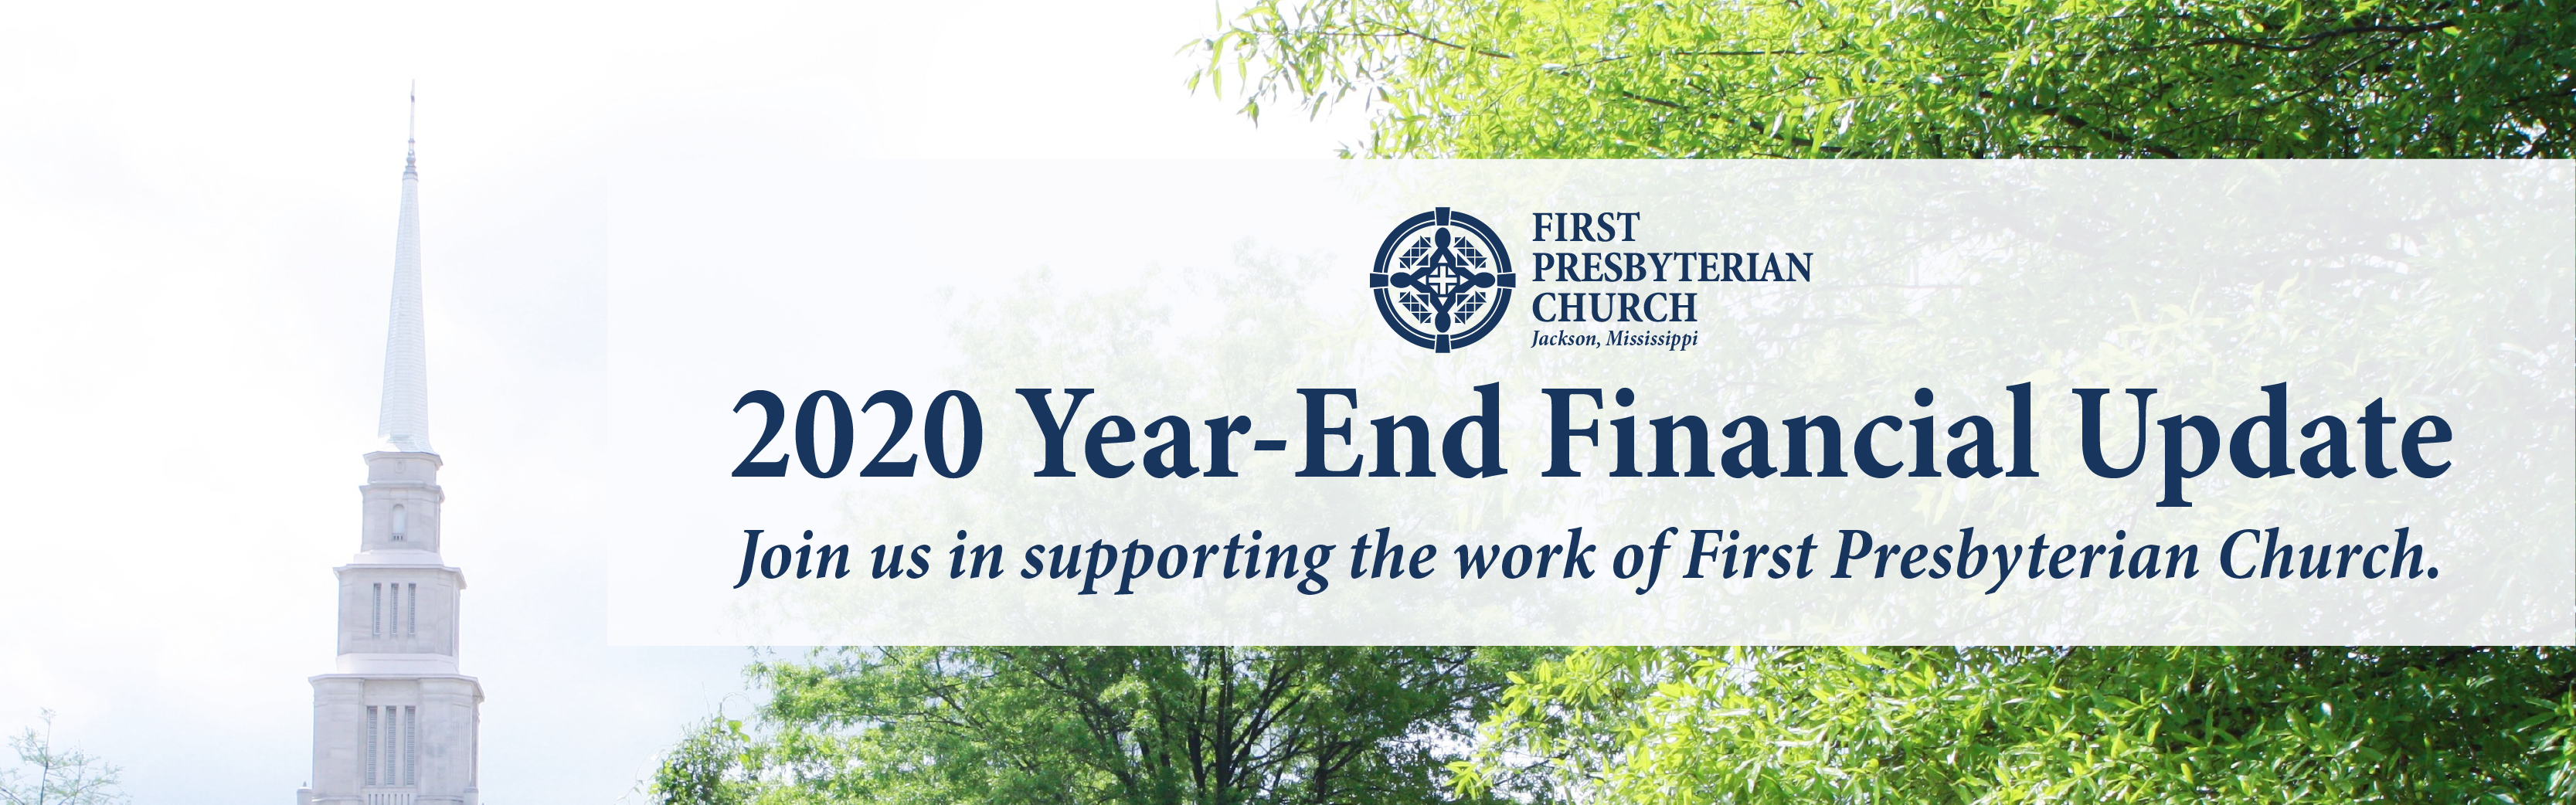 2020 Year-End Financial Update